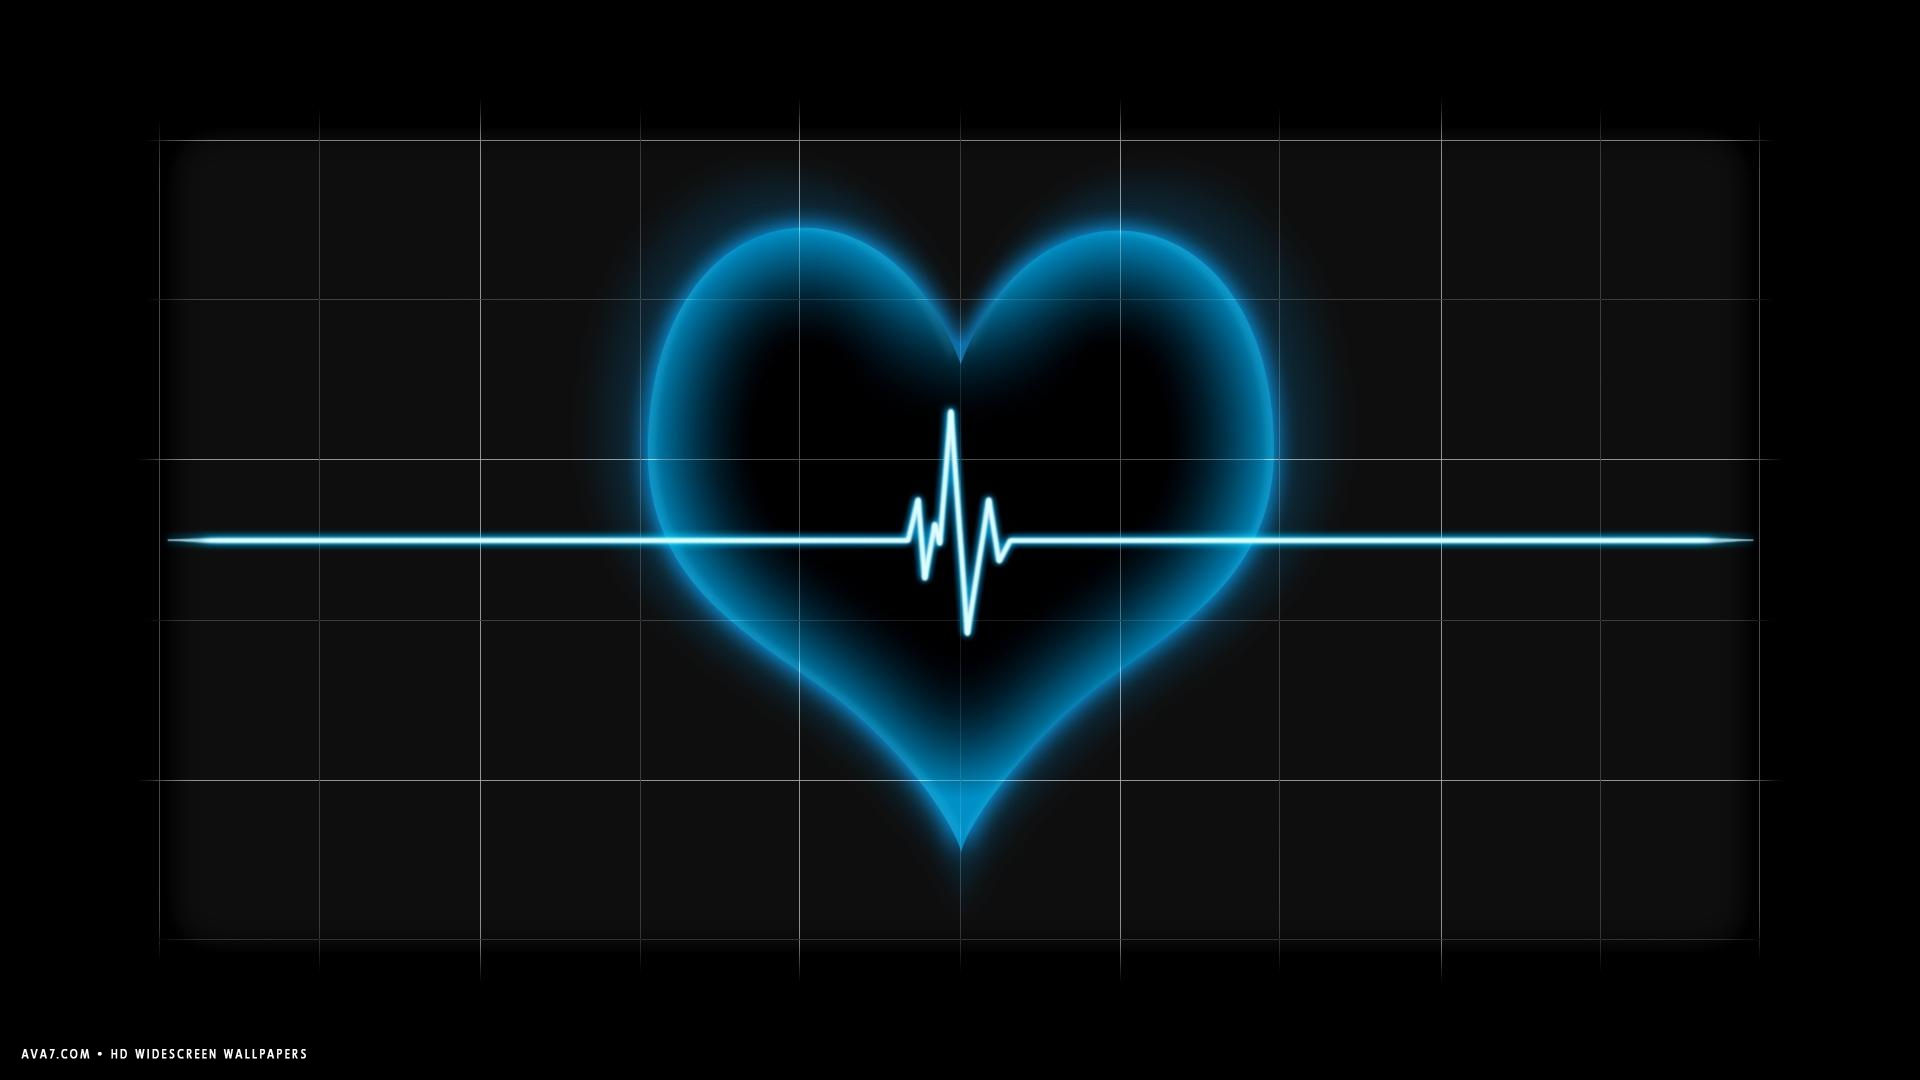 heart beat pulse line blue hd widescreen wallpaper / romantic